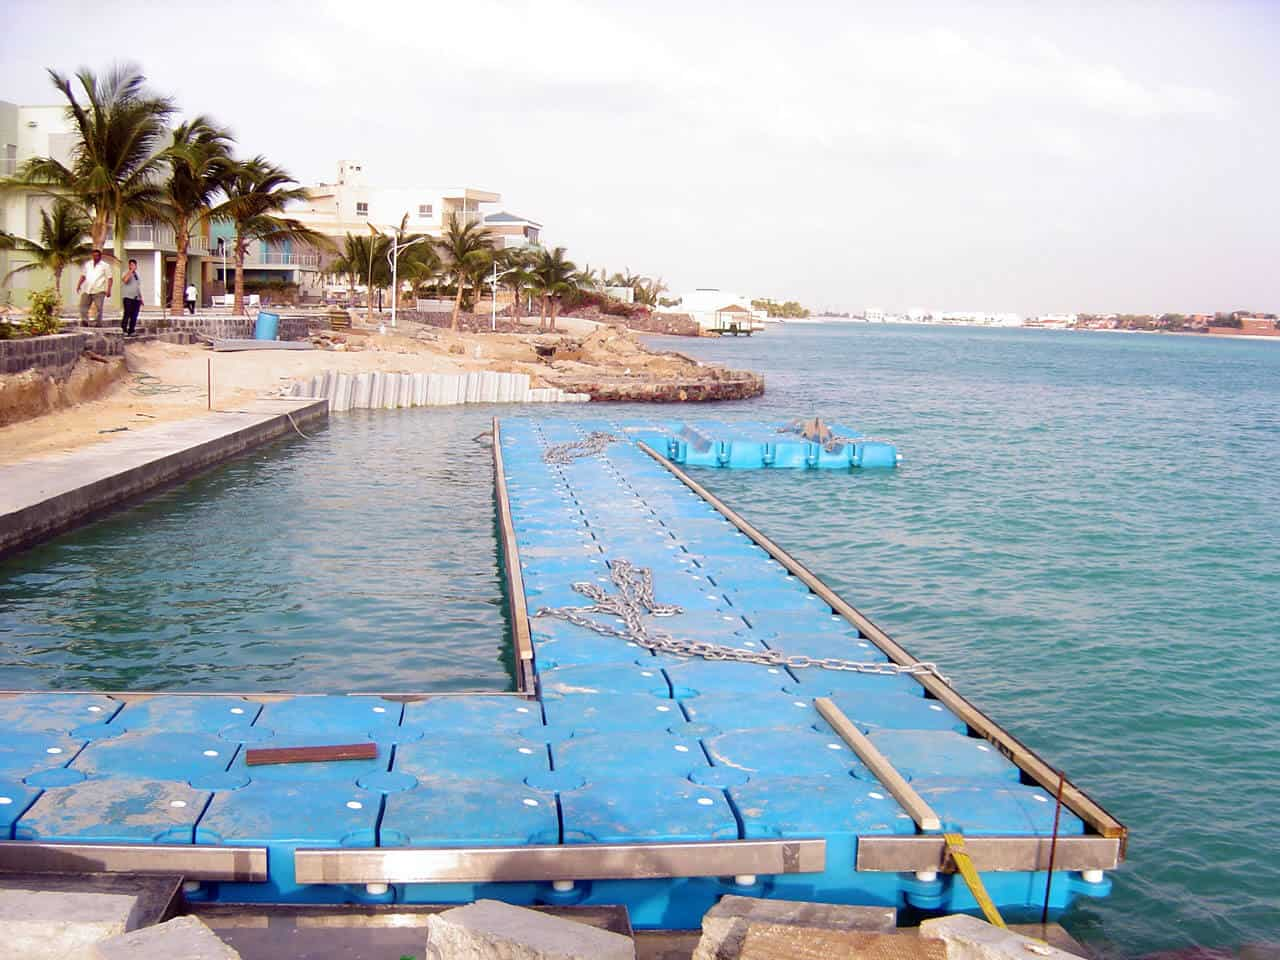 Airfloat Modular Pontoon System in use - Saudi Arabia - 11